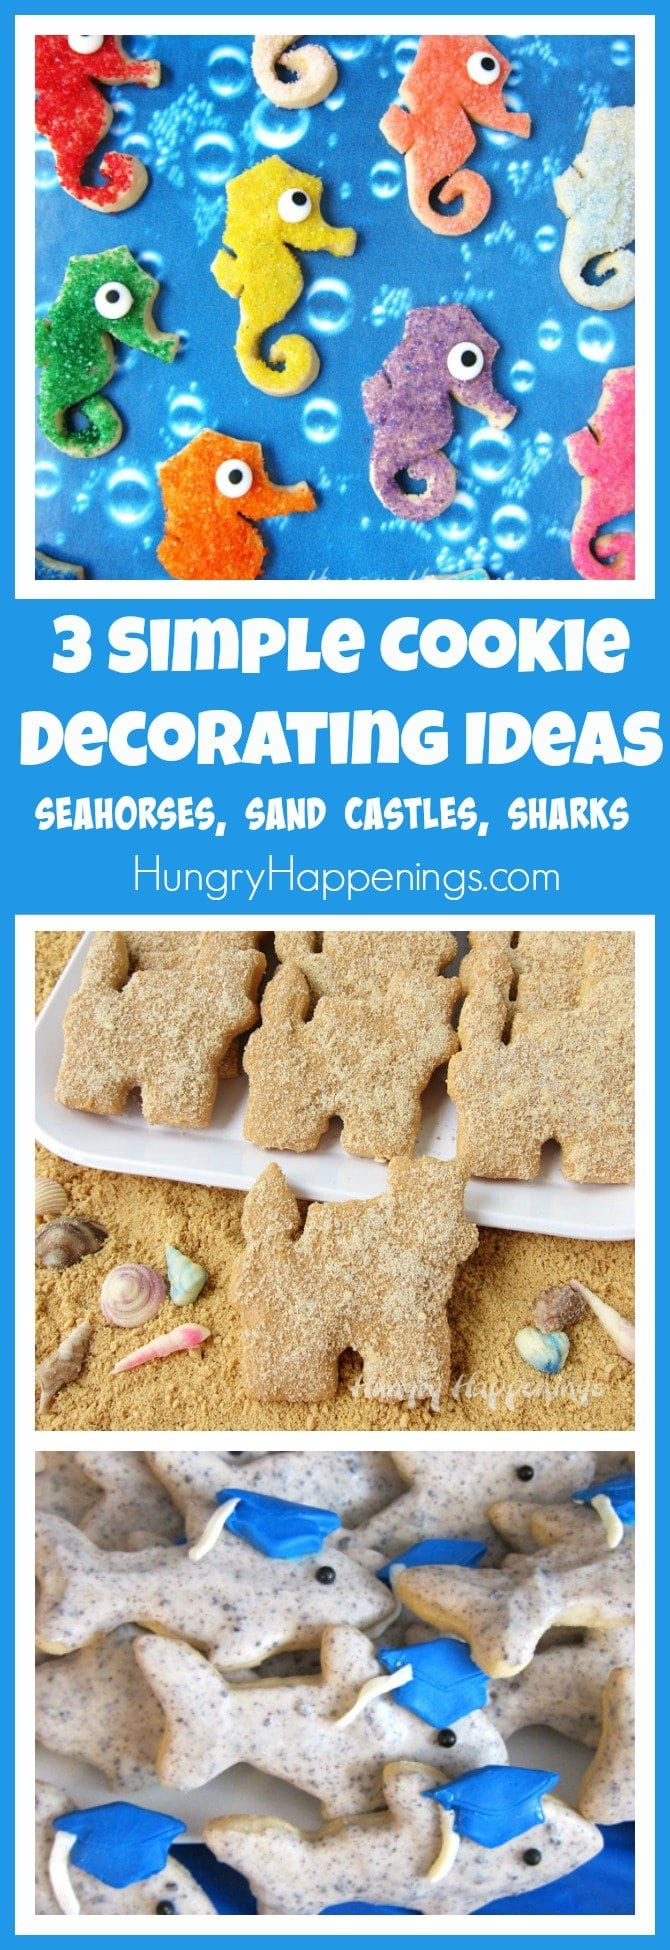 3 Simple Cookie Decorating Ideas to make Seahorse, Sand Castle, and Shark Cookies using colored sugar, candy melts, and cookie crumbs.